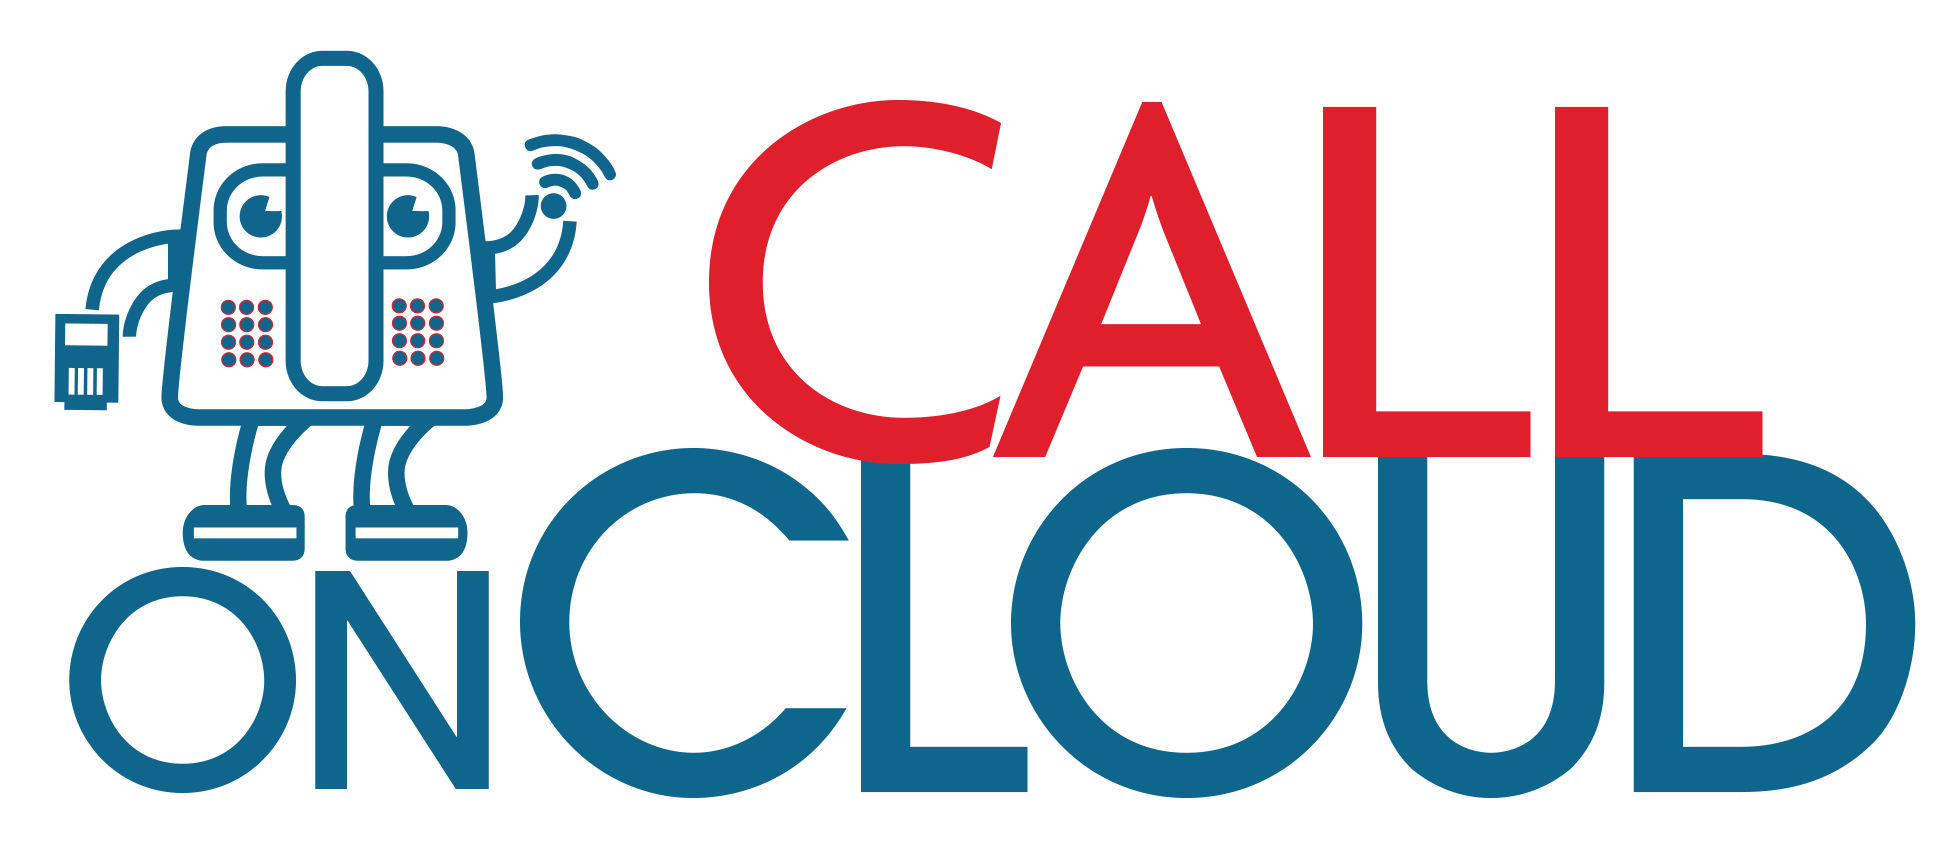 Call On Cloud Logo